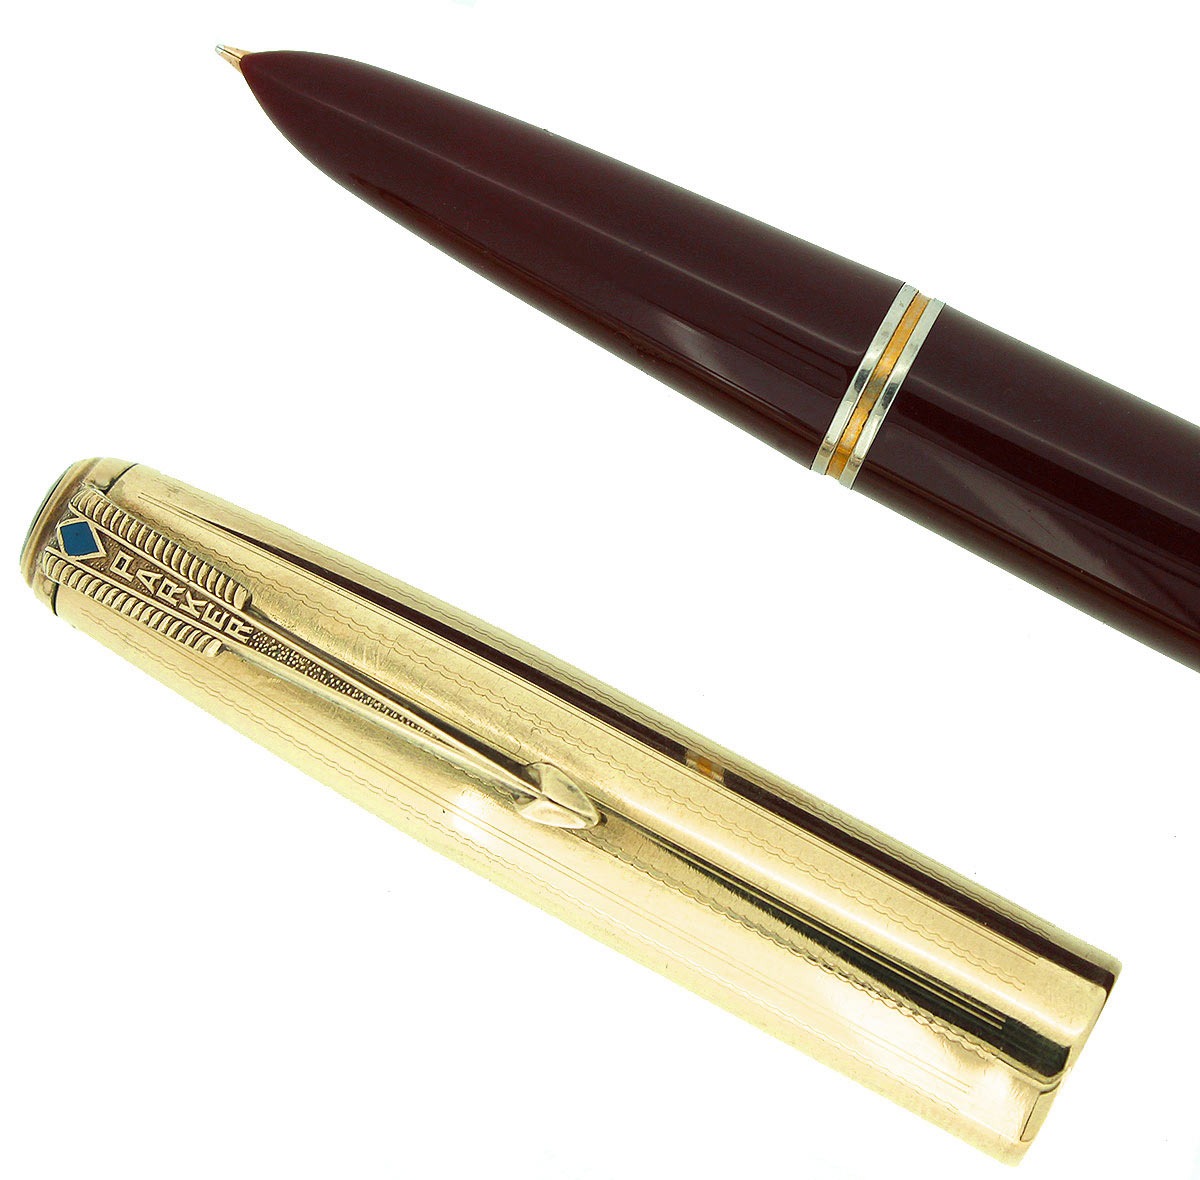 1941 PARKER 51 DOUBLE JEWEL FIRST YEAR CORDOVAN BROWN FOUNTAIN PEN RESTORED OFFERED BY ANTIQUE DIGGER